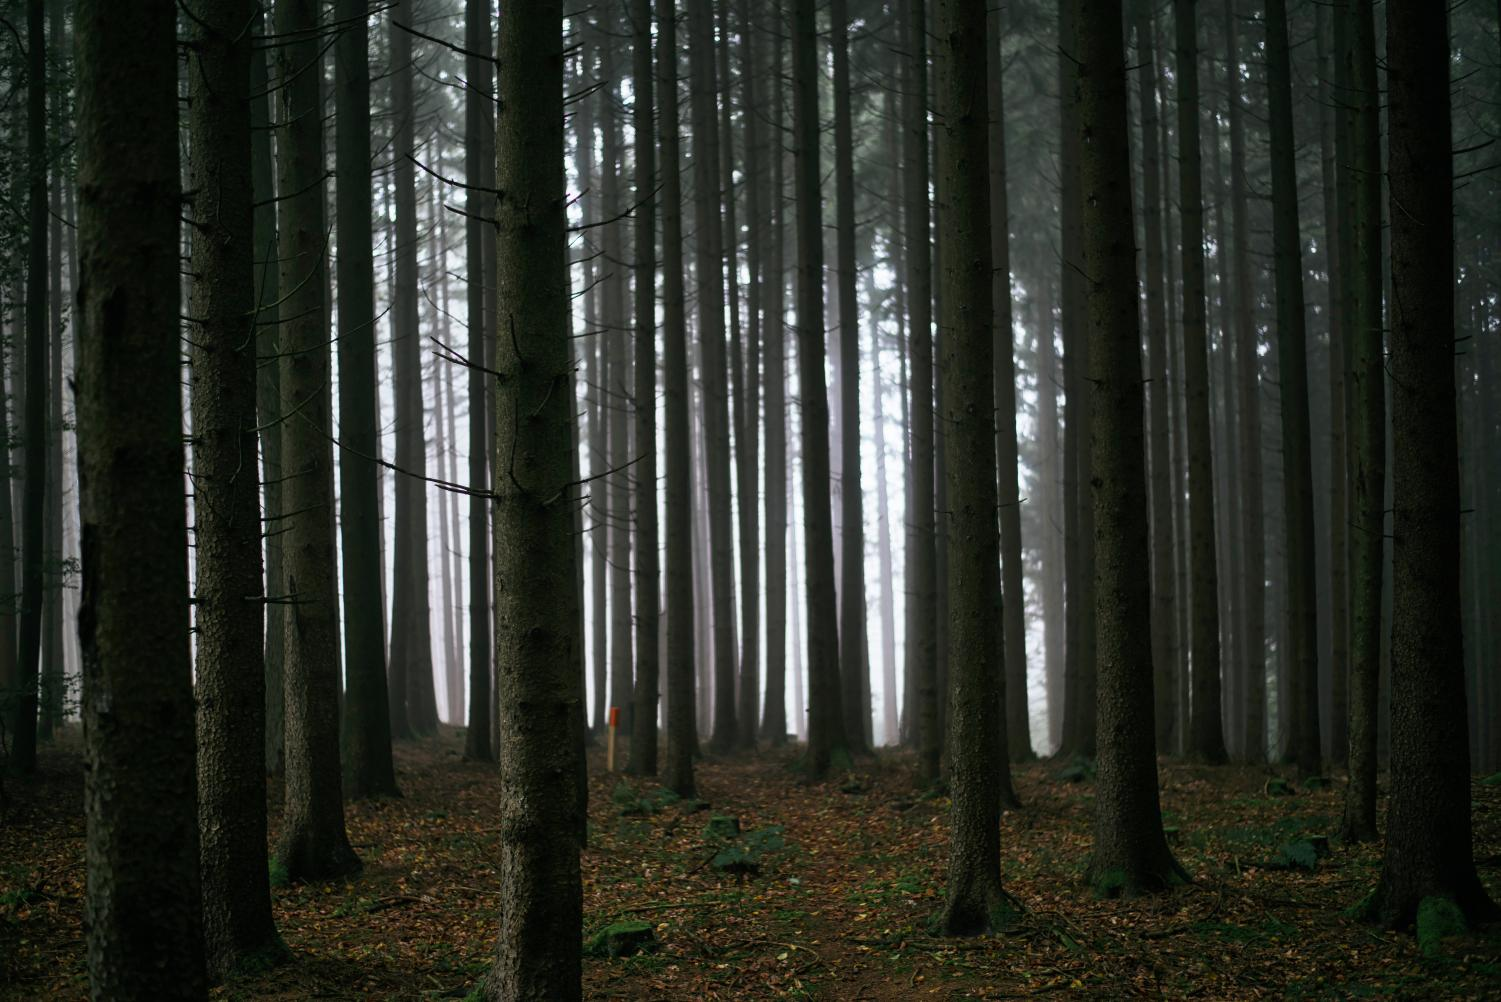 Dark forest portraying how dense the forest is in which Rodger lives.